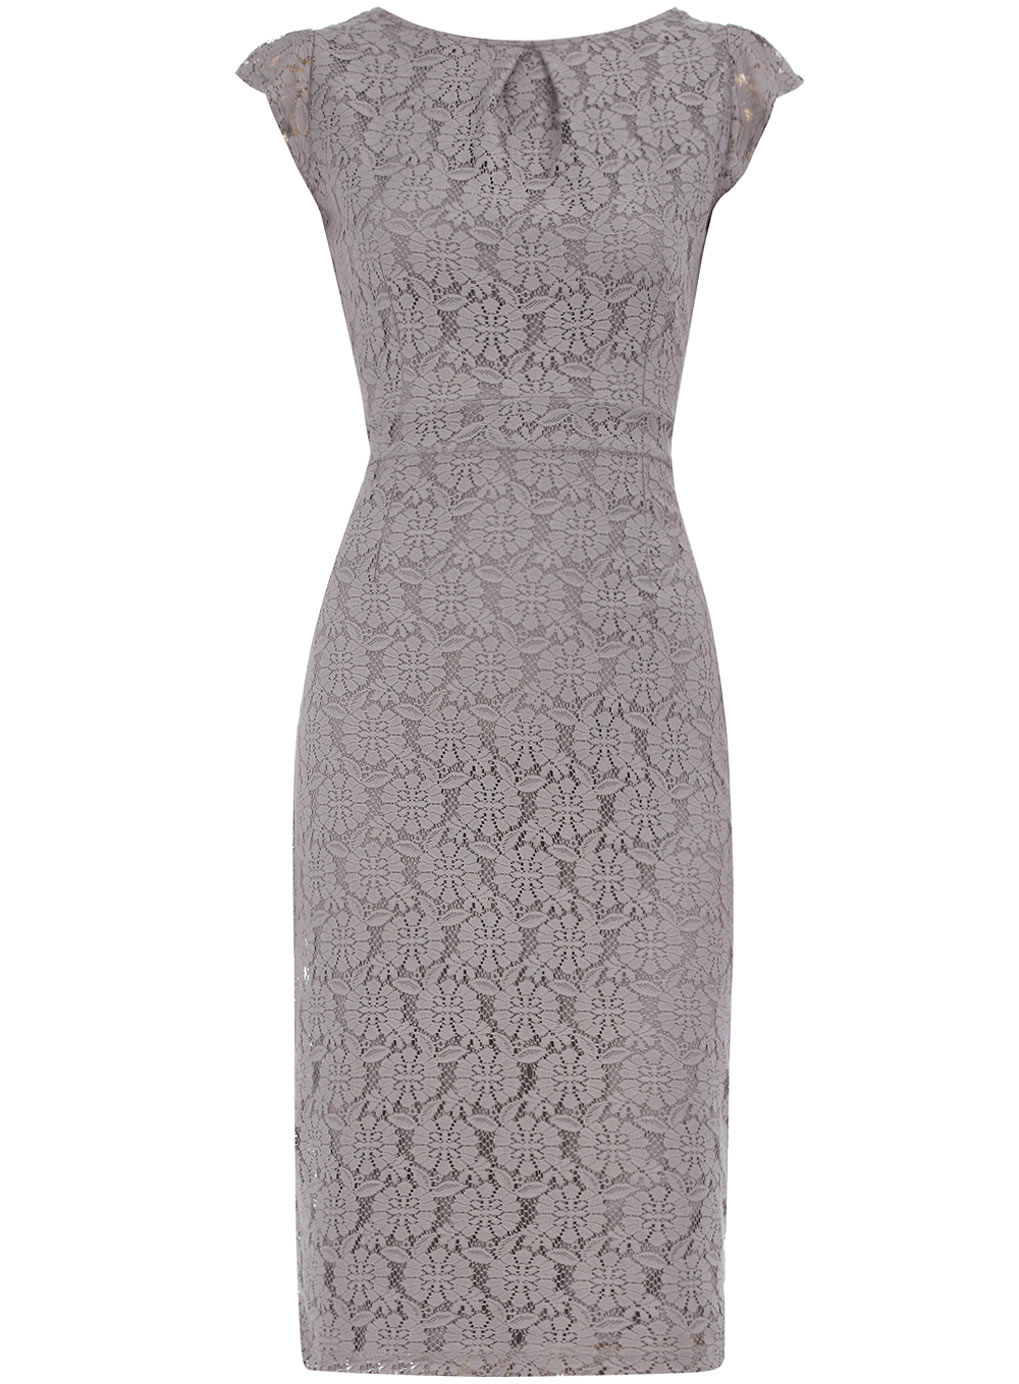 Galerry lace dress in grey